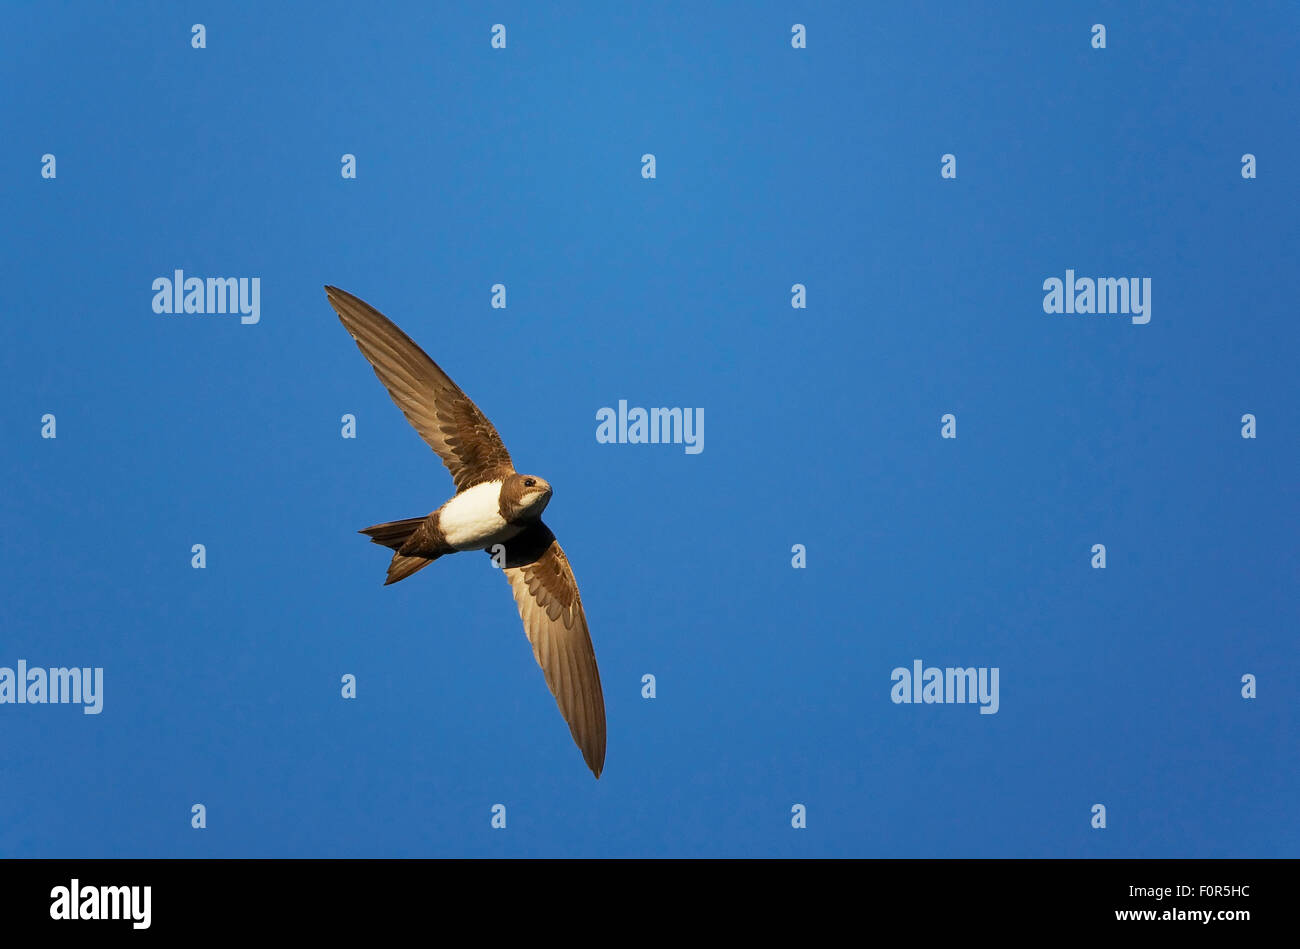 Alpine swift (Tachymarptis melba) in flight, Extremadura, Spain, April 2009 - Stock Image